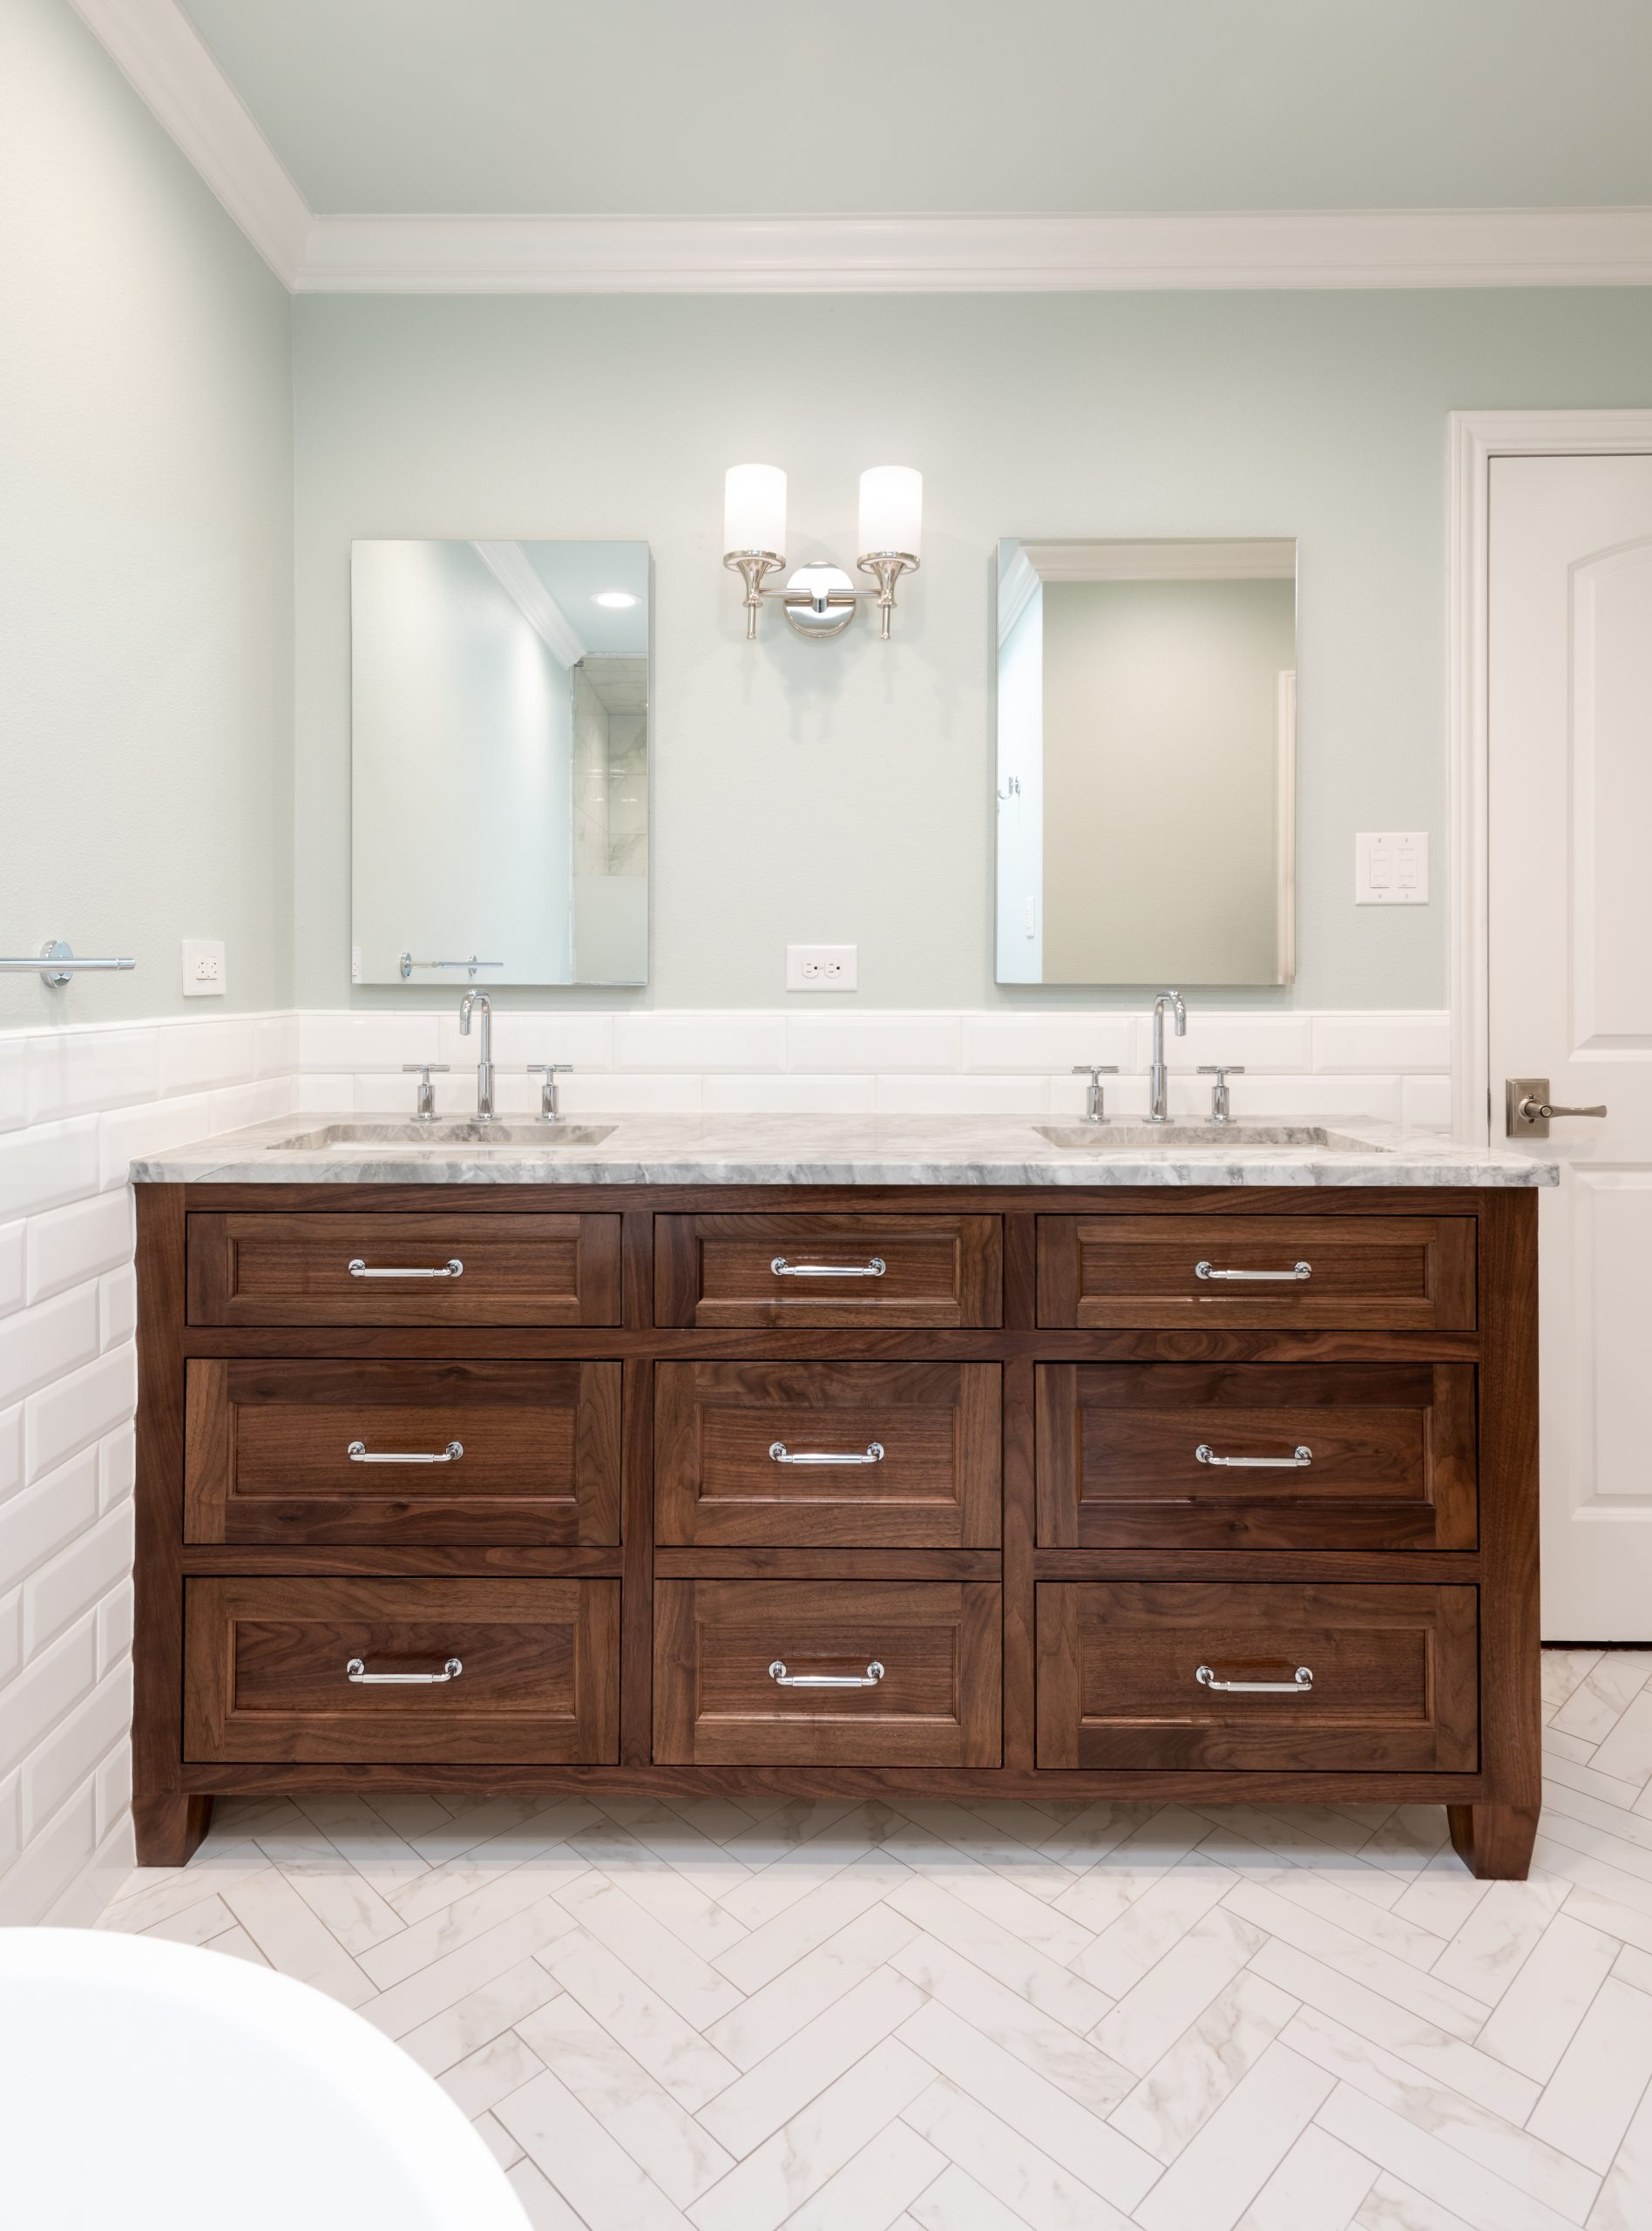 walnut vanity in dallas bathroom remodel